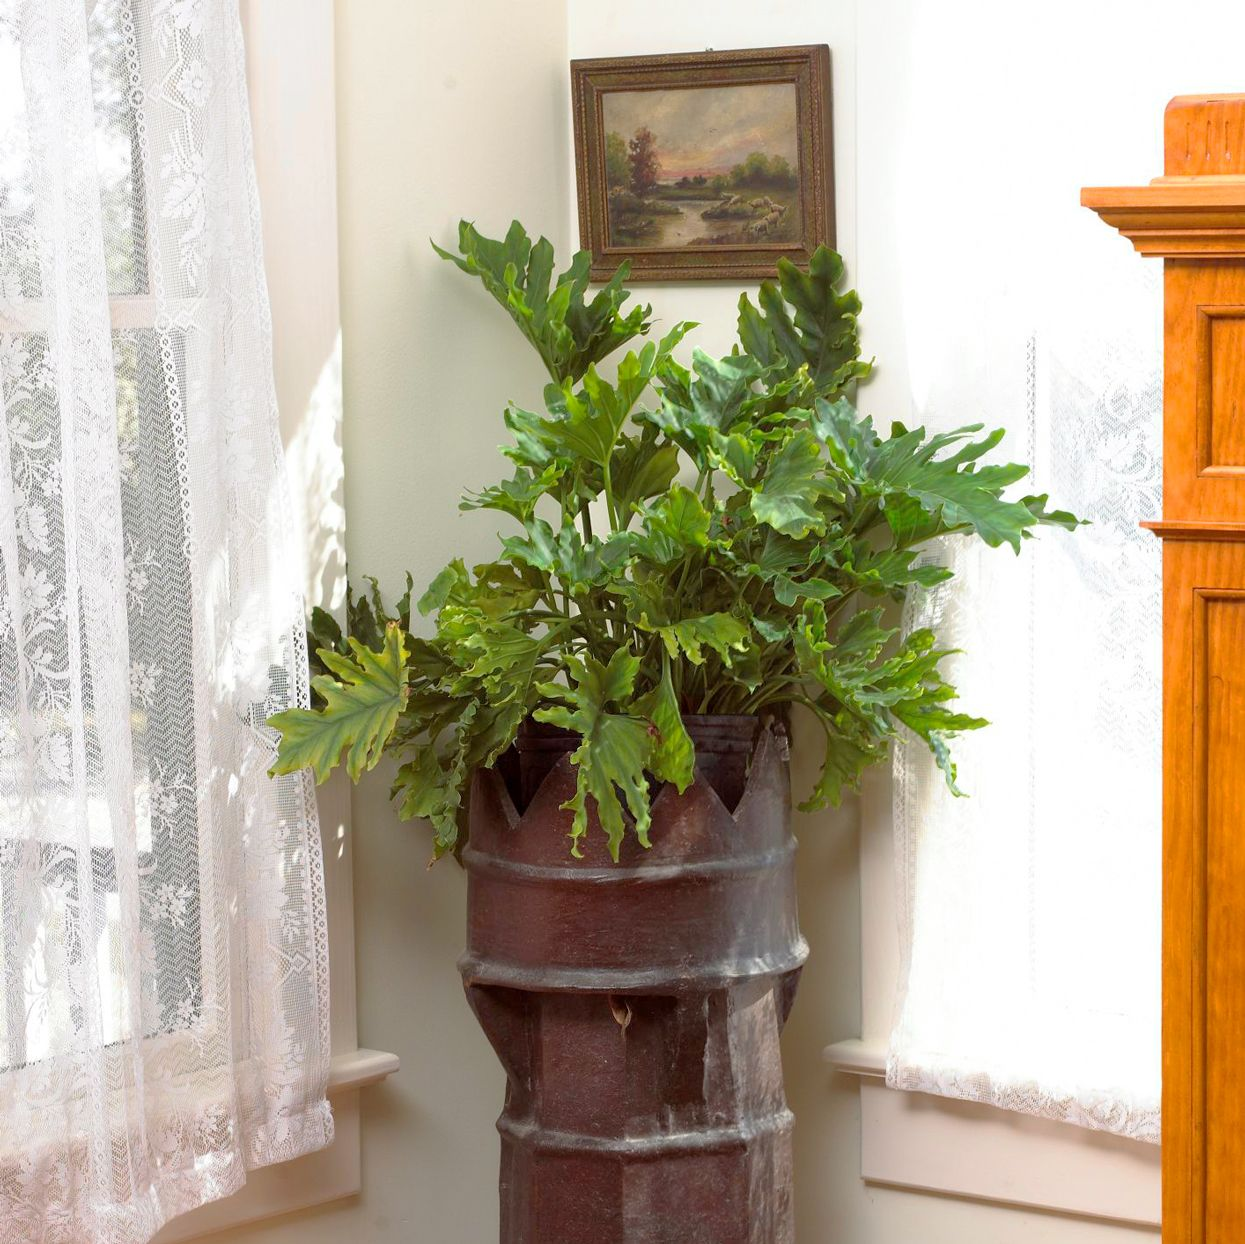 Looking for a LowMaintenance Houseplant? Consider Getting